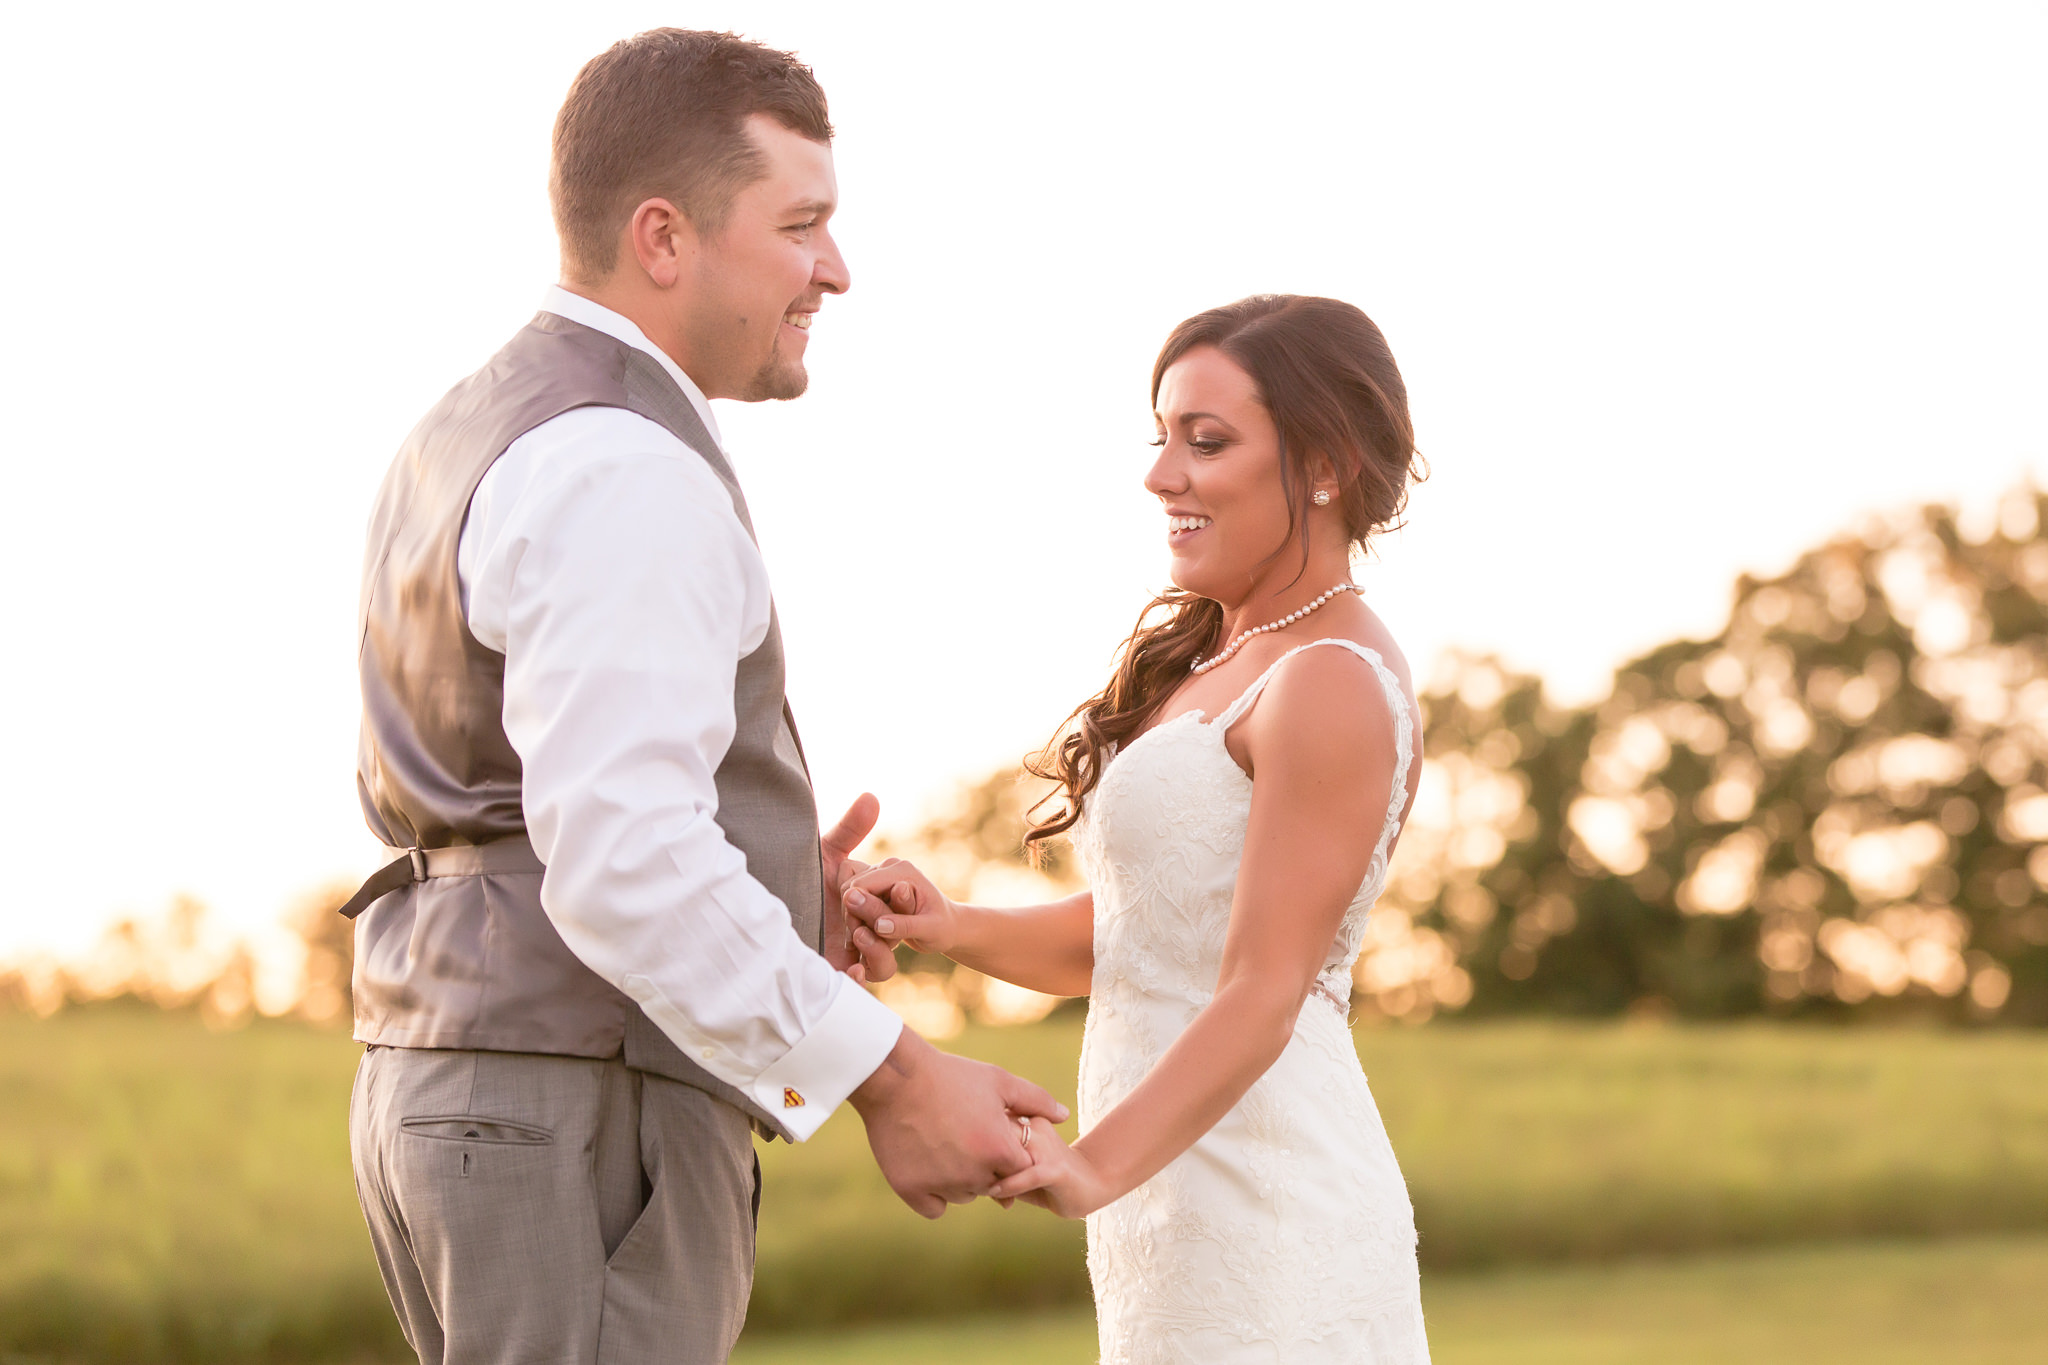 Bride and groom playfully interact at White Barn